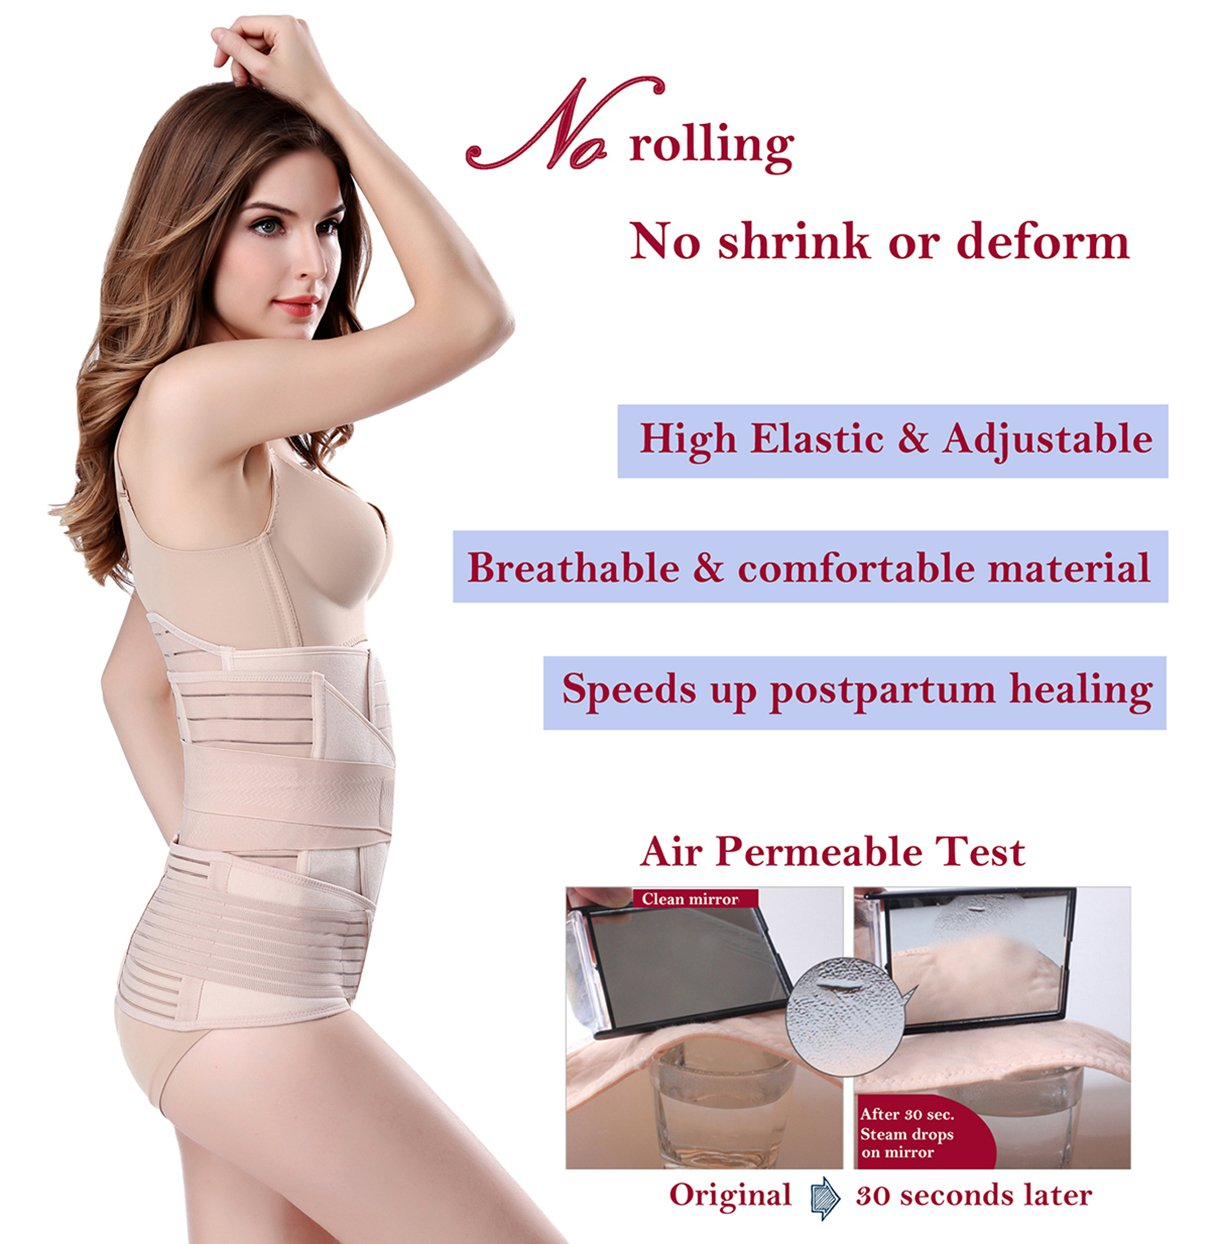 3 in 1 Postpartum Support - Recovery Belly/waist/pelvis Belt Shapewear Slimming Girdle, Beige, One Size by Chongerfei (Image #3)